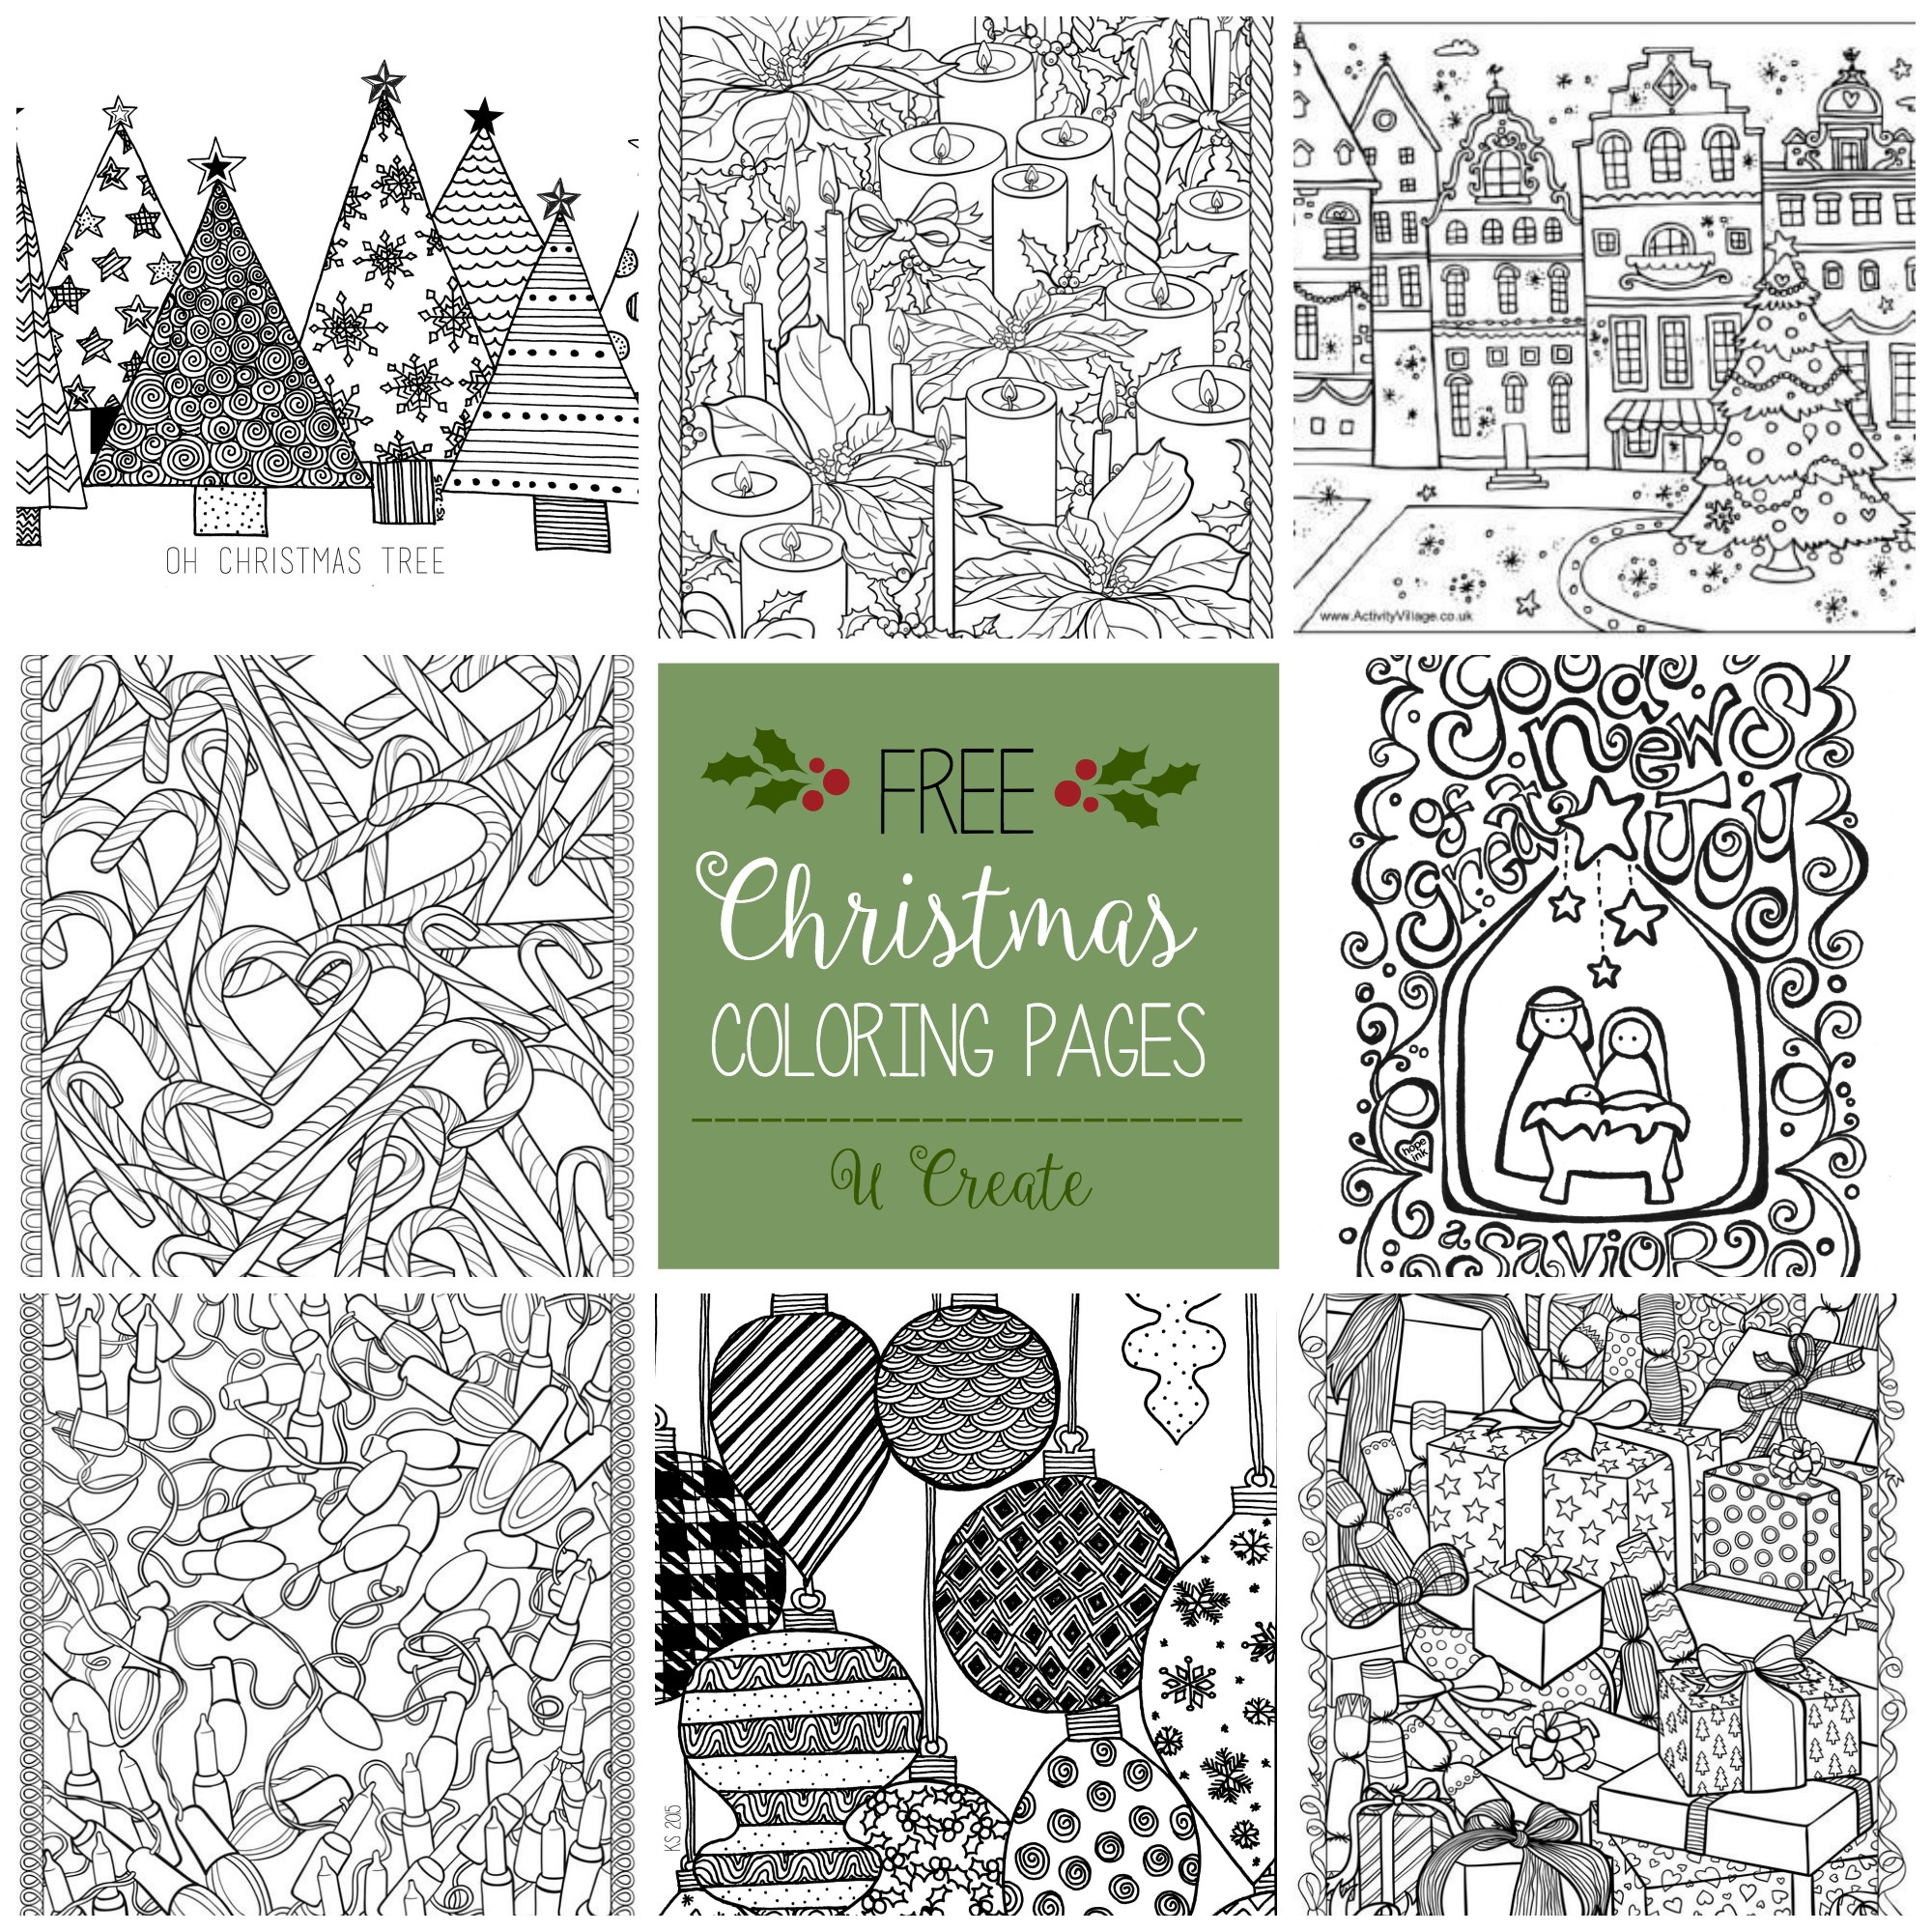 Merry Christmas Coloring Banner - U Create